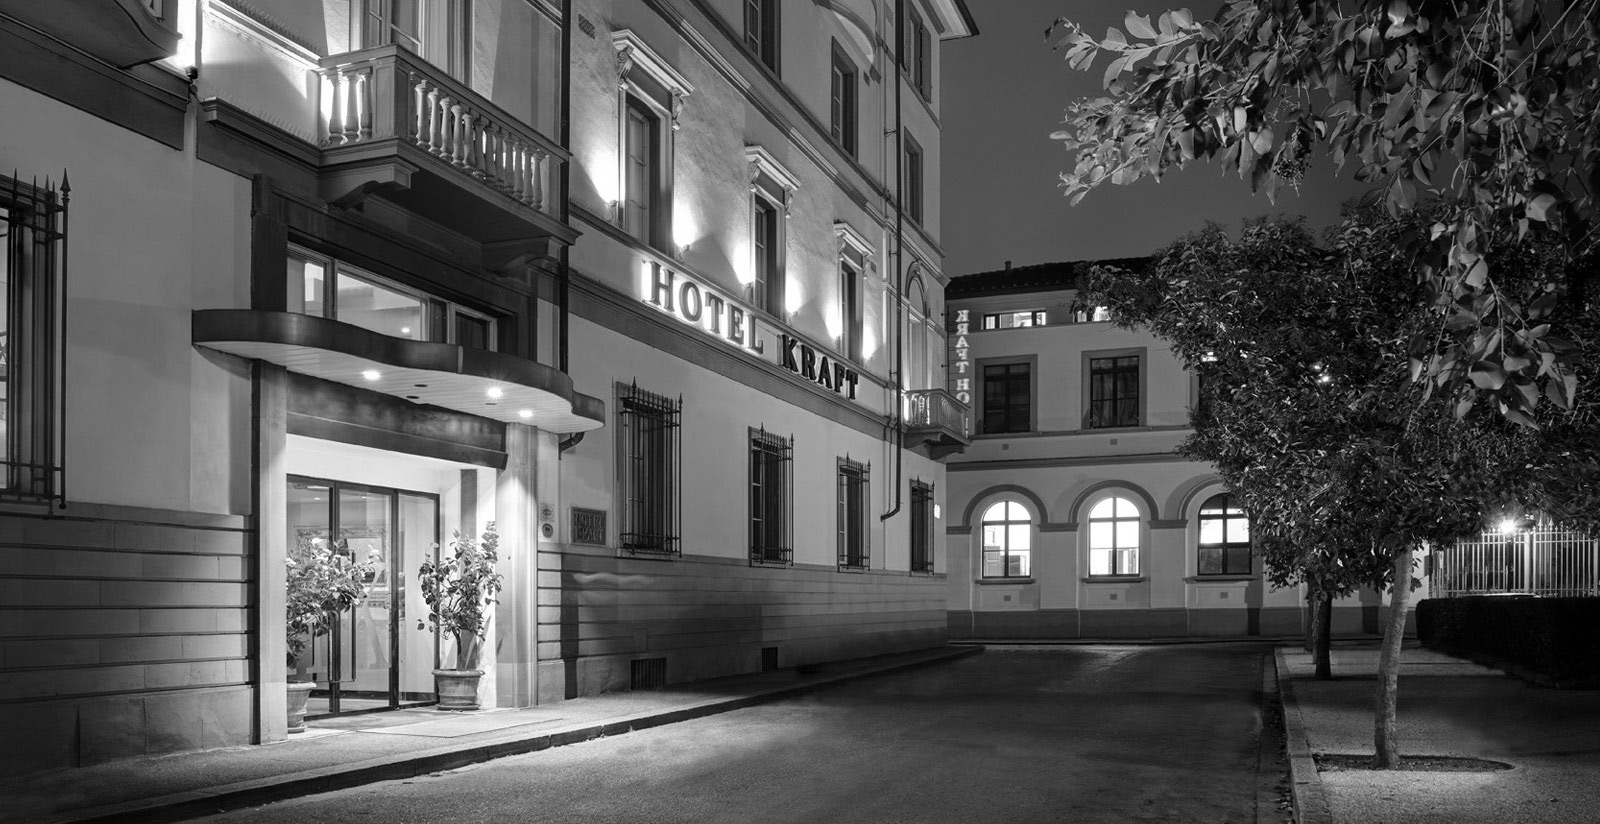 Artelinea collaboration: Hotel Kraft in the center of Florence